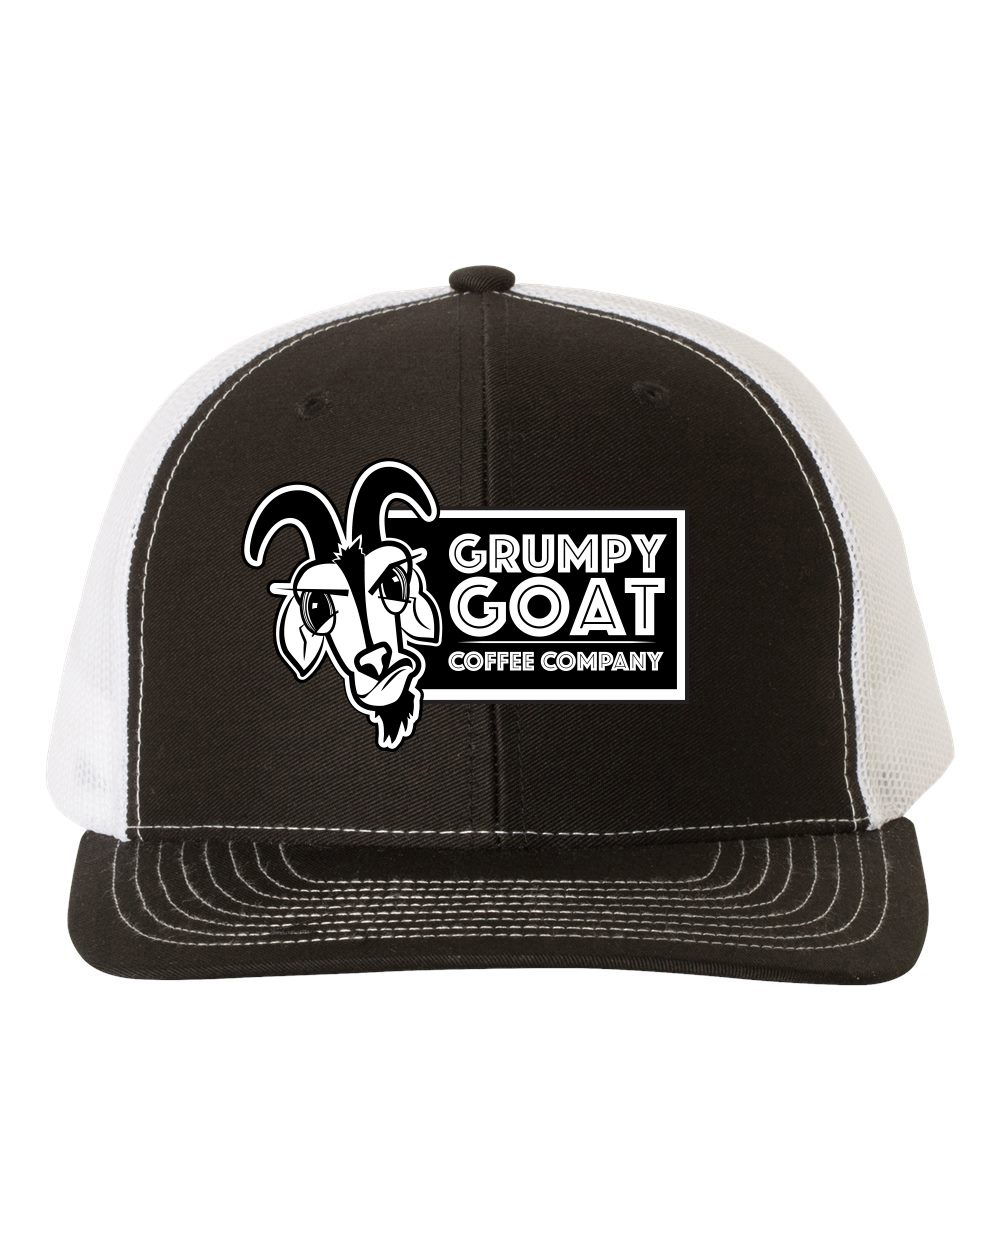 Grumpy Goat Black Trucker Hat with White Mesh \u2013 Coffee